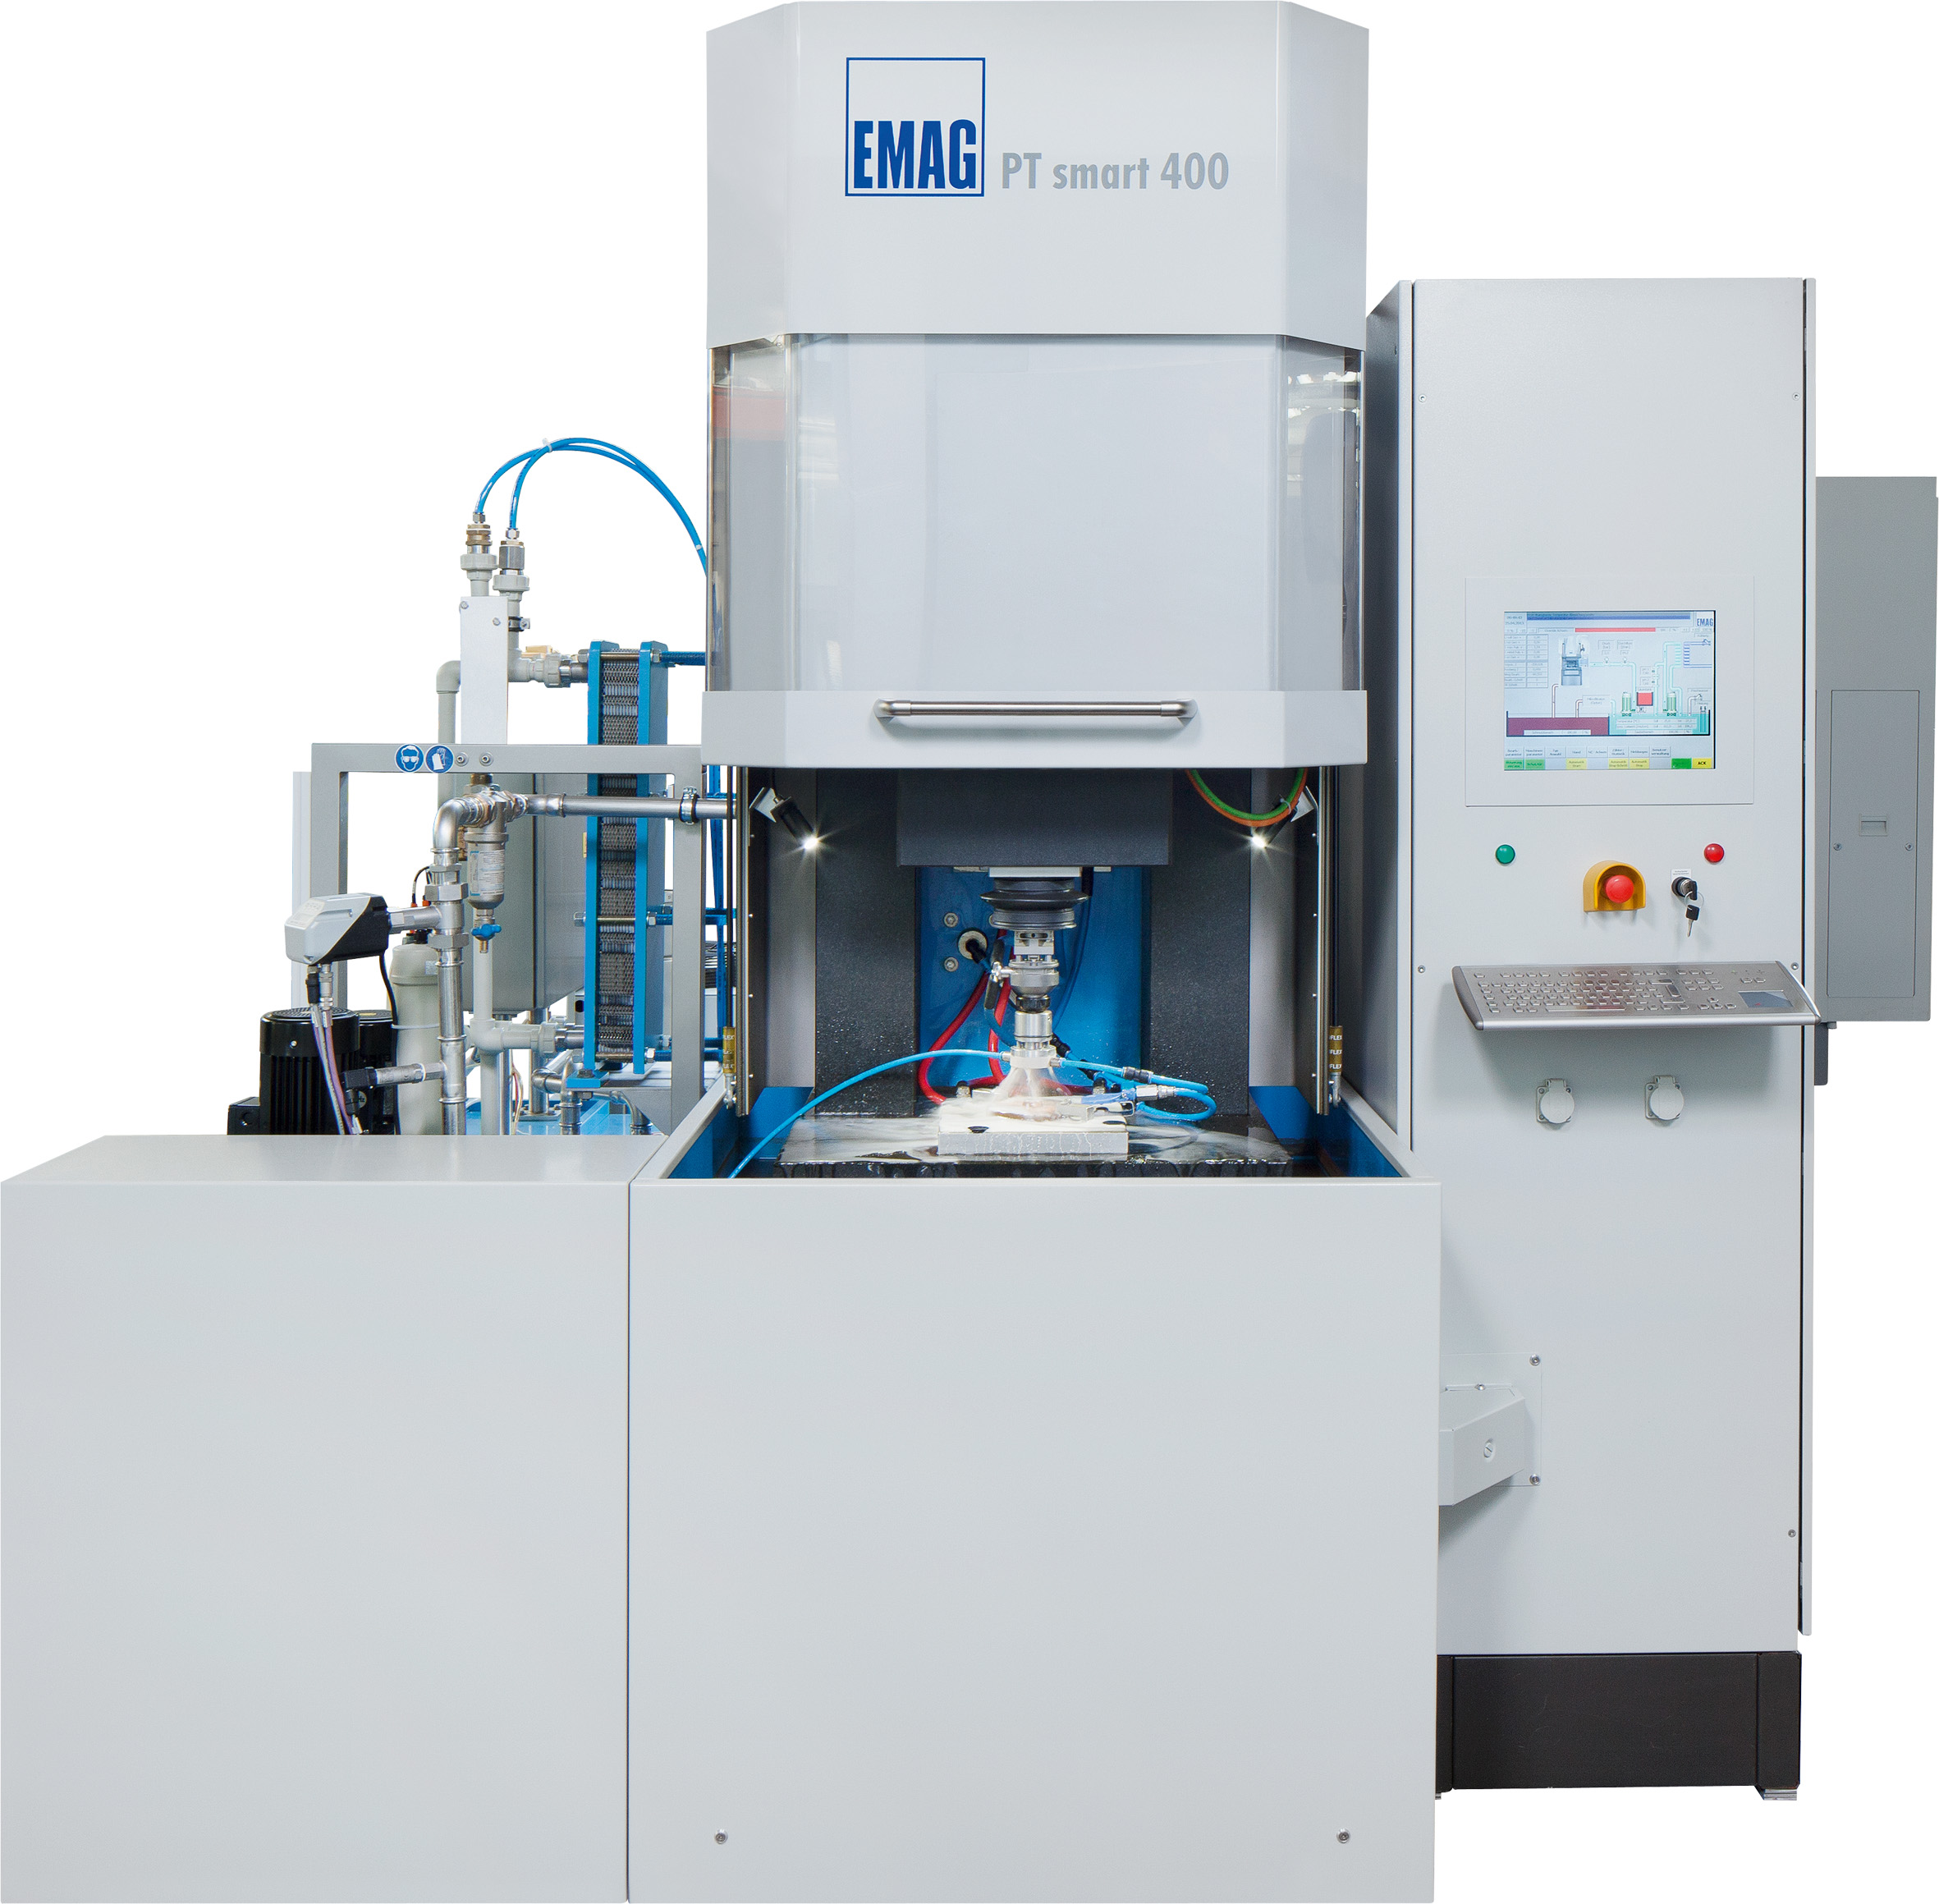 EMAGs ECM technology simplifies production process and